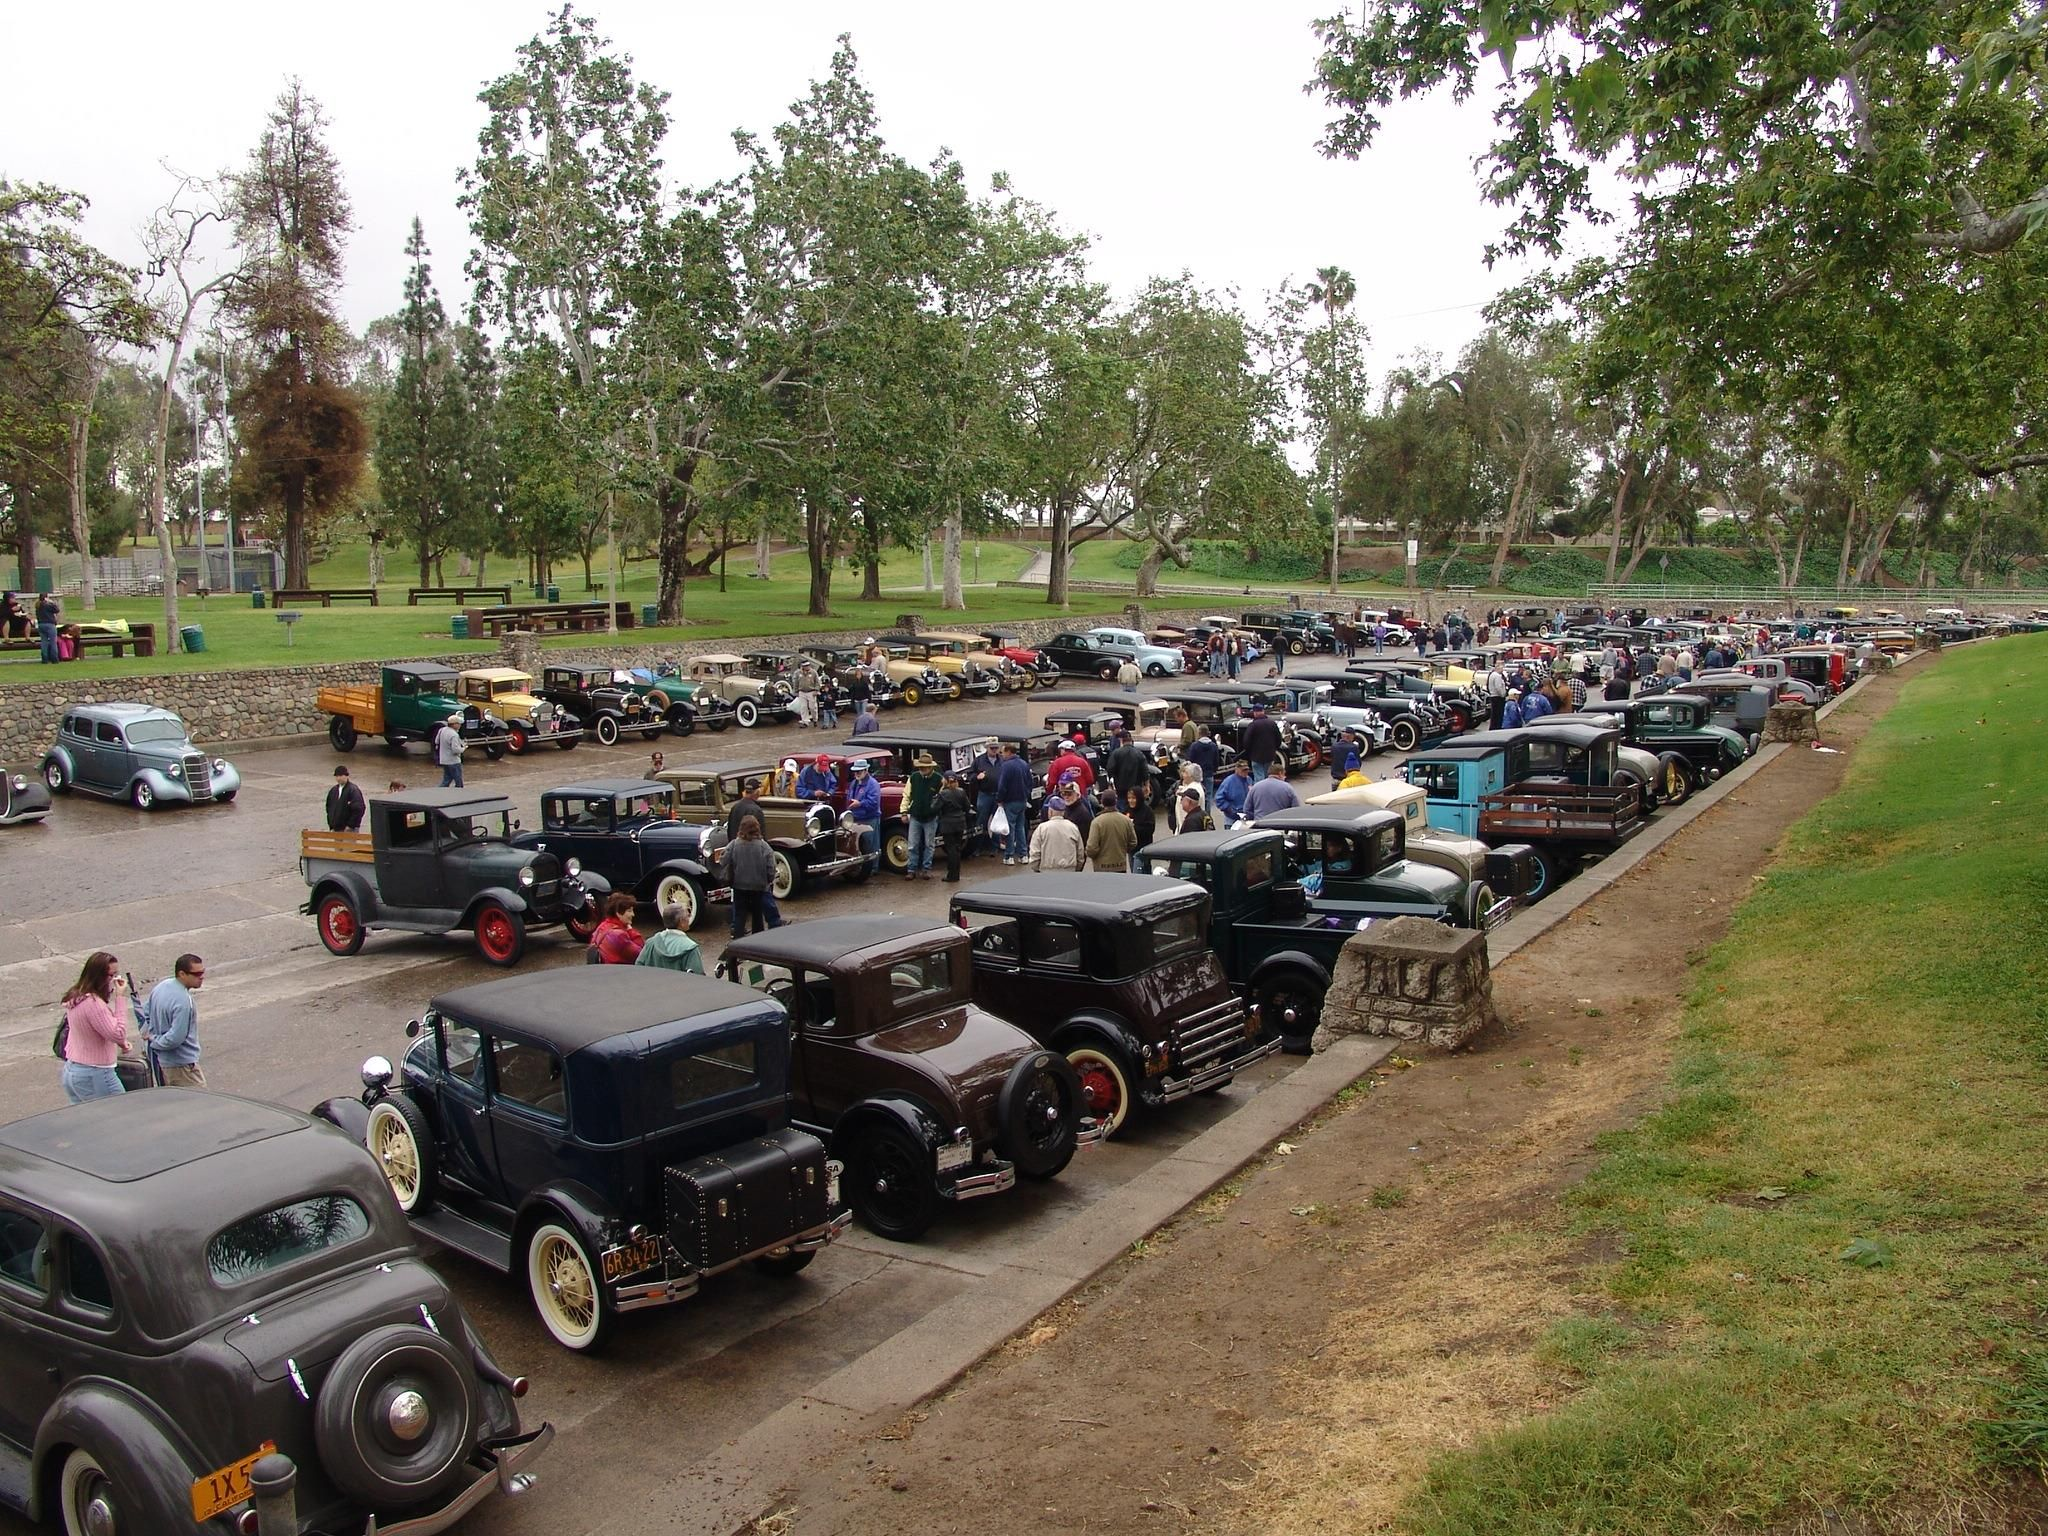 This photo is from a Car Show in Hart Park, Orange, CA and was taken ...